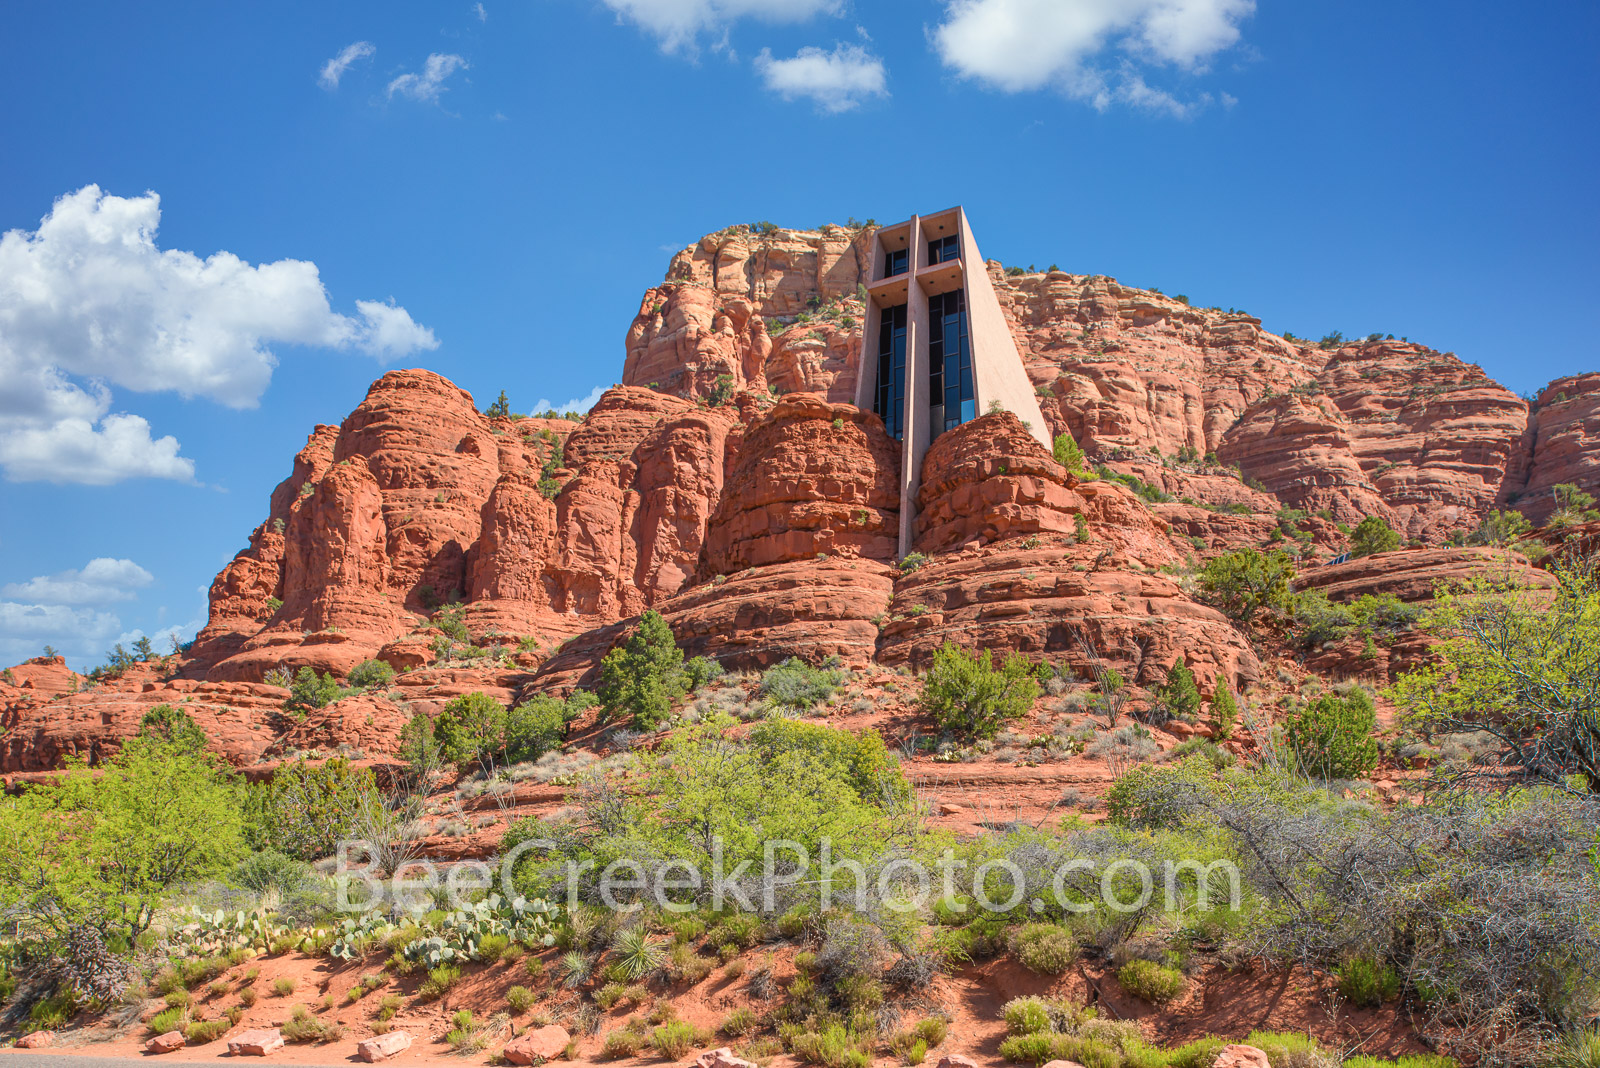 Chapel of the Holy Cross -  Its not often you see a structure built into the side of a mountain but the Chapel of the Holy Cross...